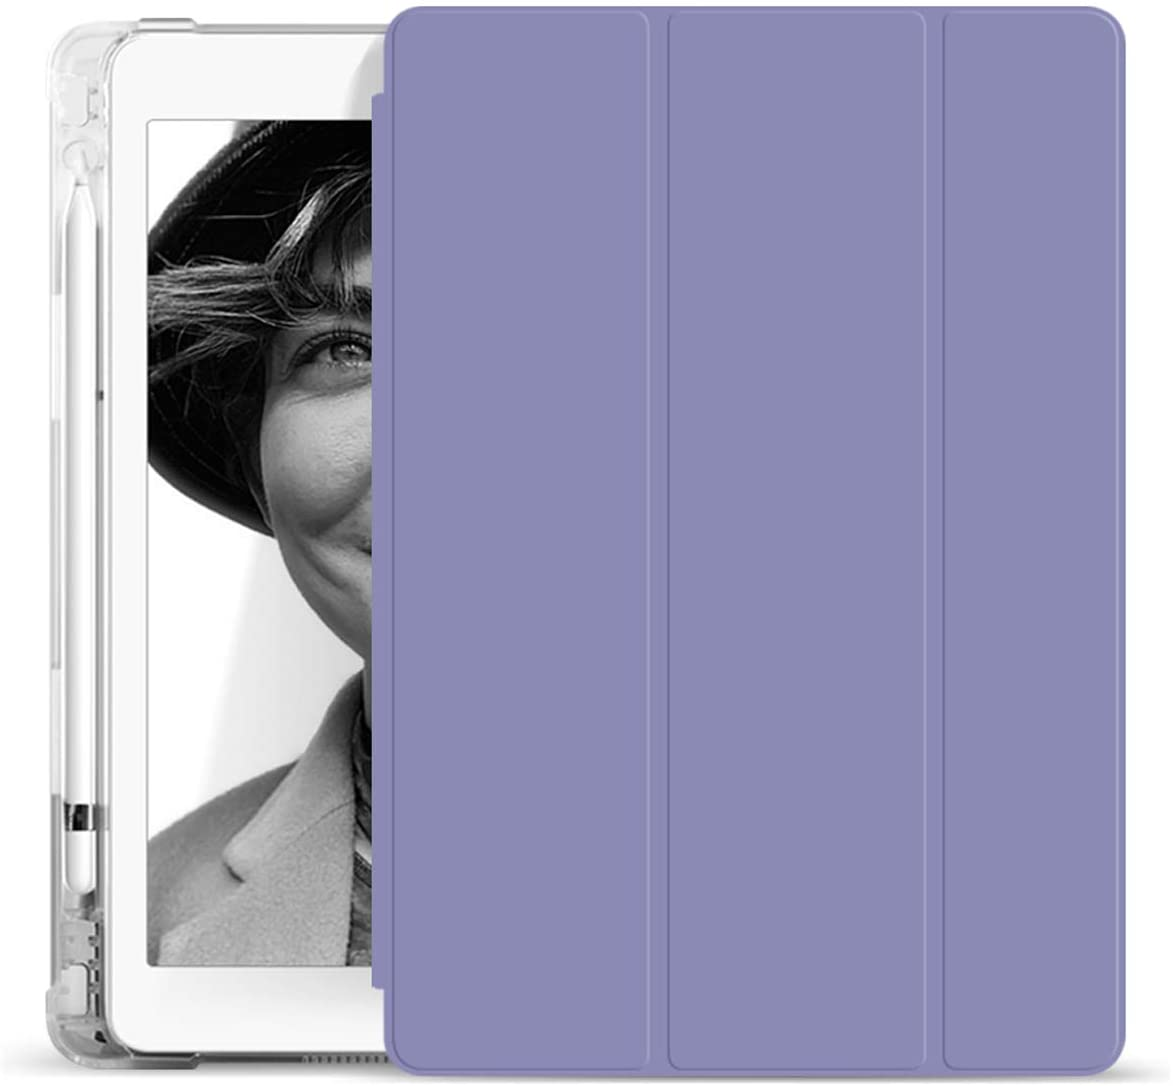 KenKe New iPad 9.7 2018/2017 Case with Pencil Holder, Smart Trifold Stand Case with Shockproof Lightweight Protective Soft TPU Back Cover with Auto Sleep/Wake for iPad 6th/5th Generation (Purple)